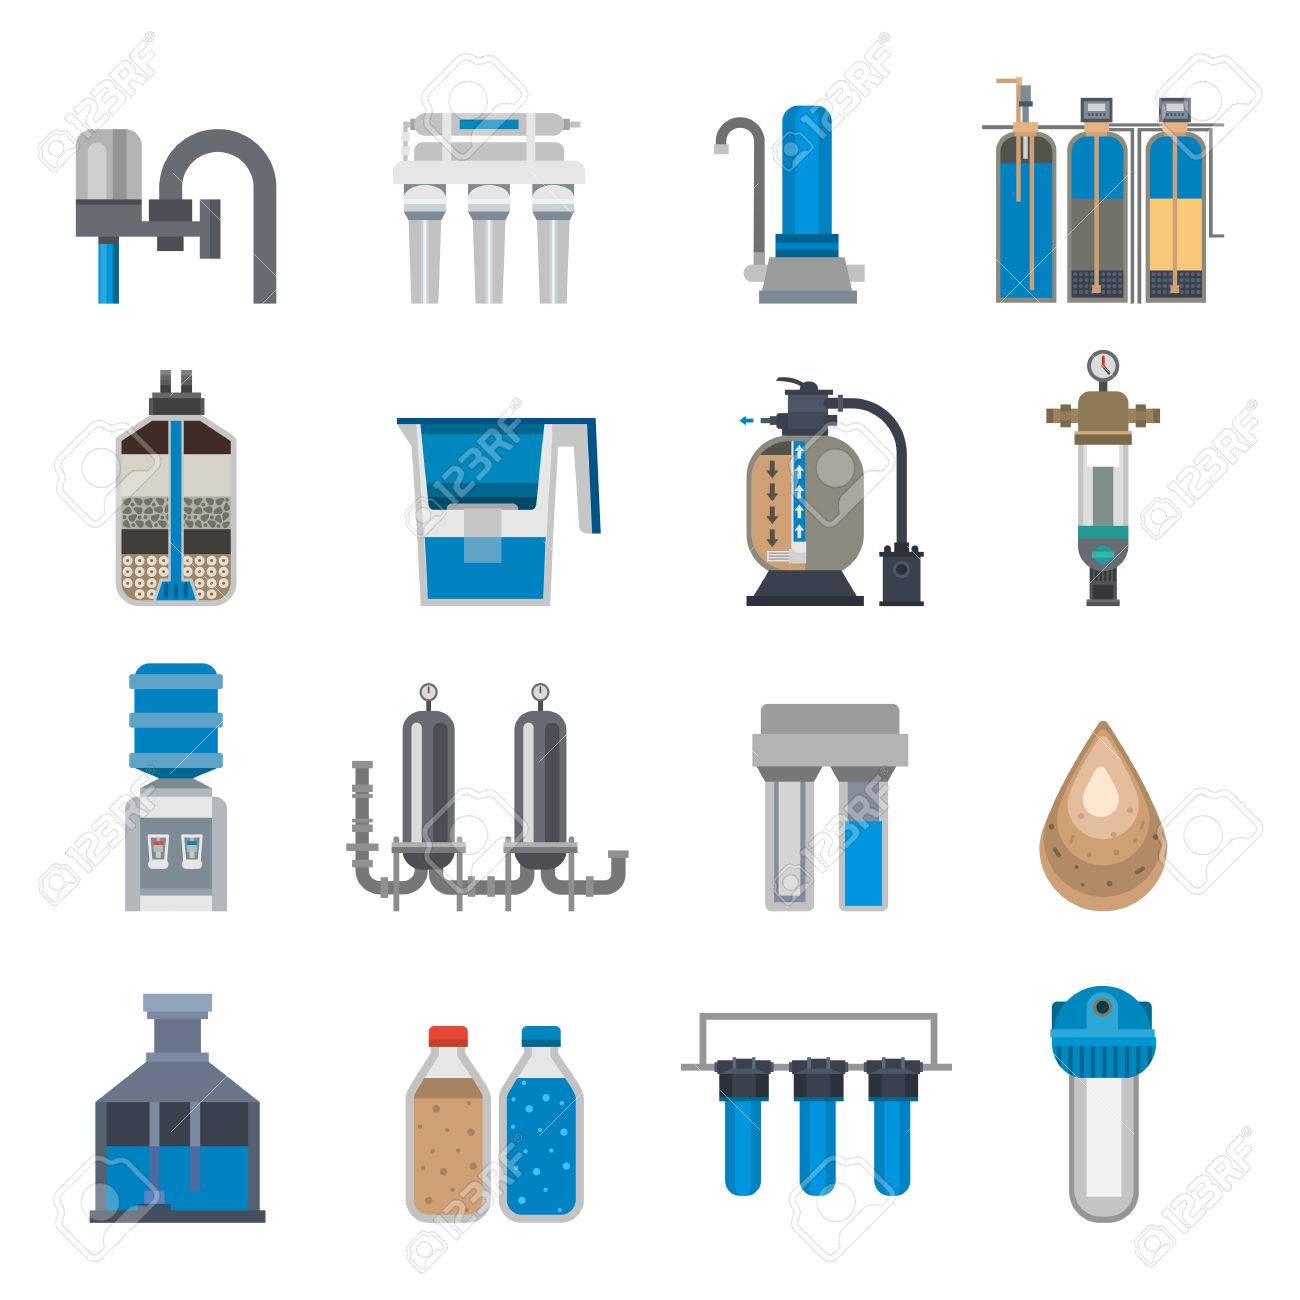 Water filtration icons vector illustration. - 70935067